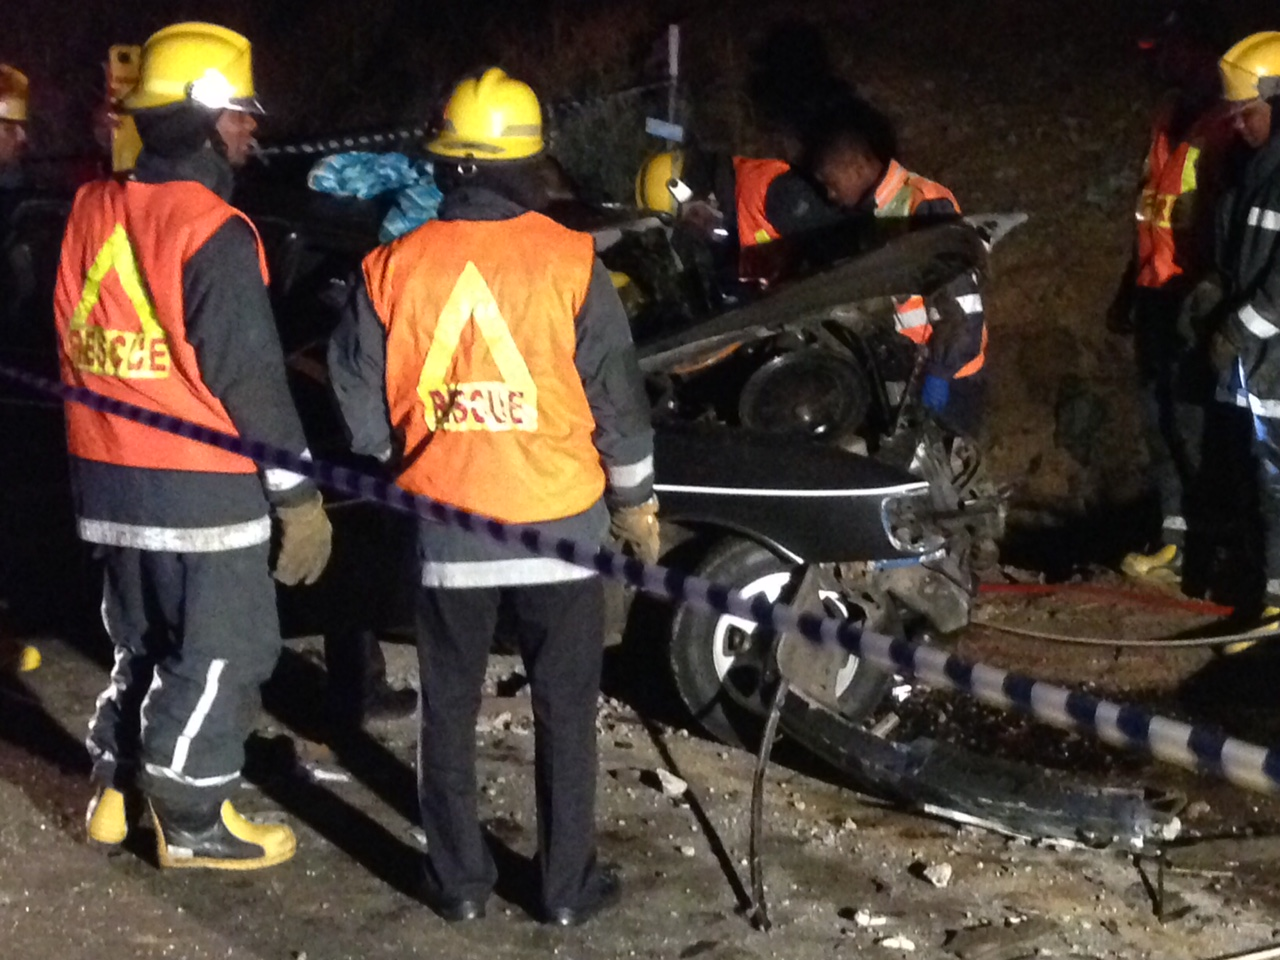 Jaws of life needed to cut men free from wreckage